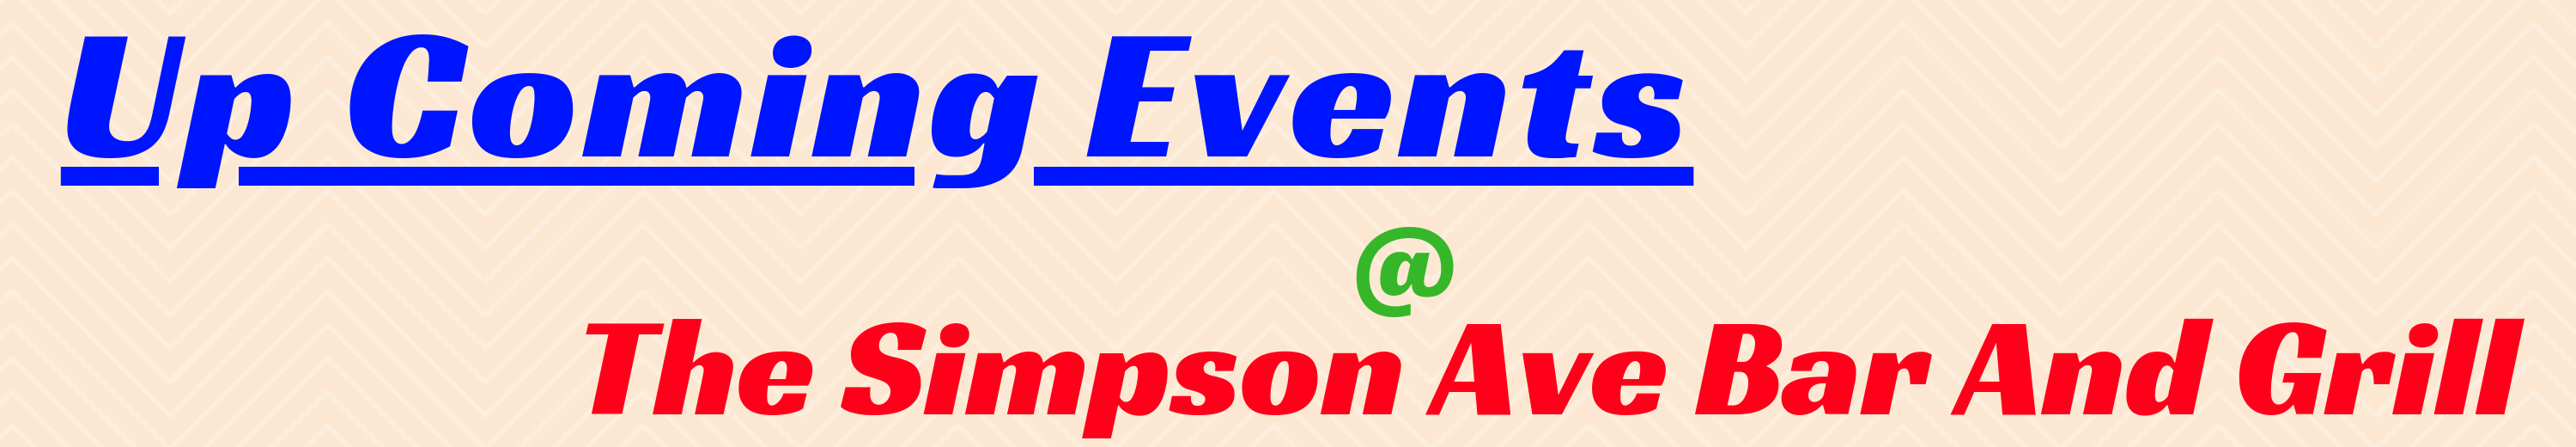 Up Coming Events At The Simpson Ave Bar And Grill